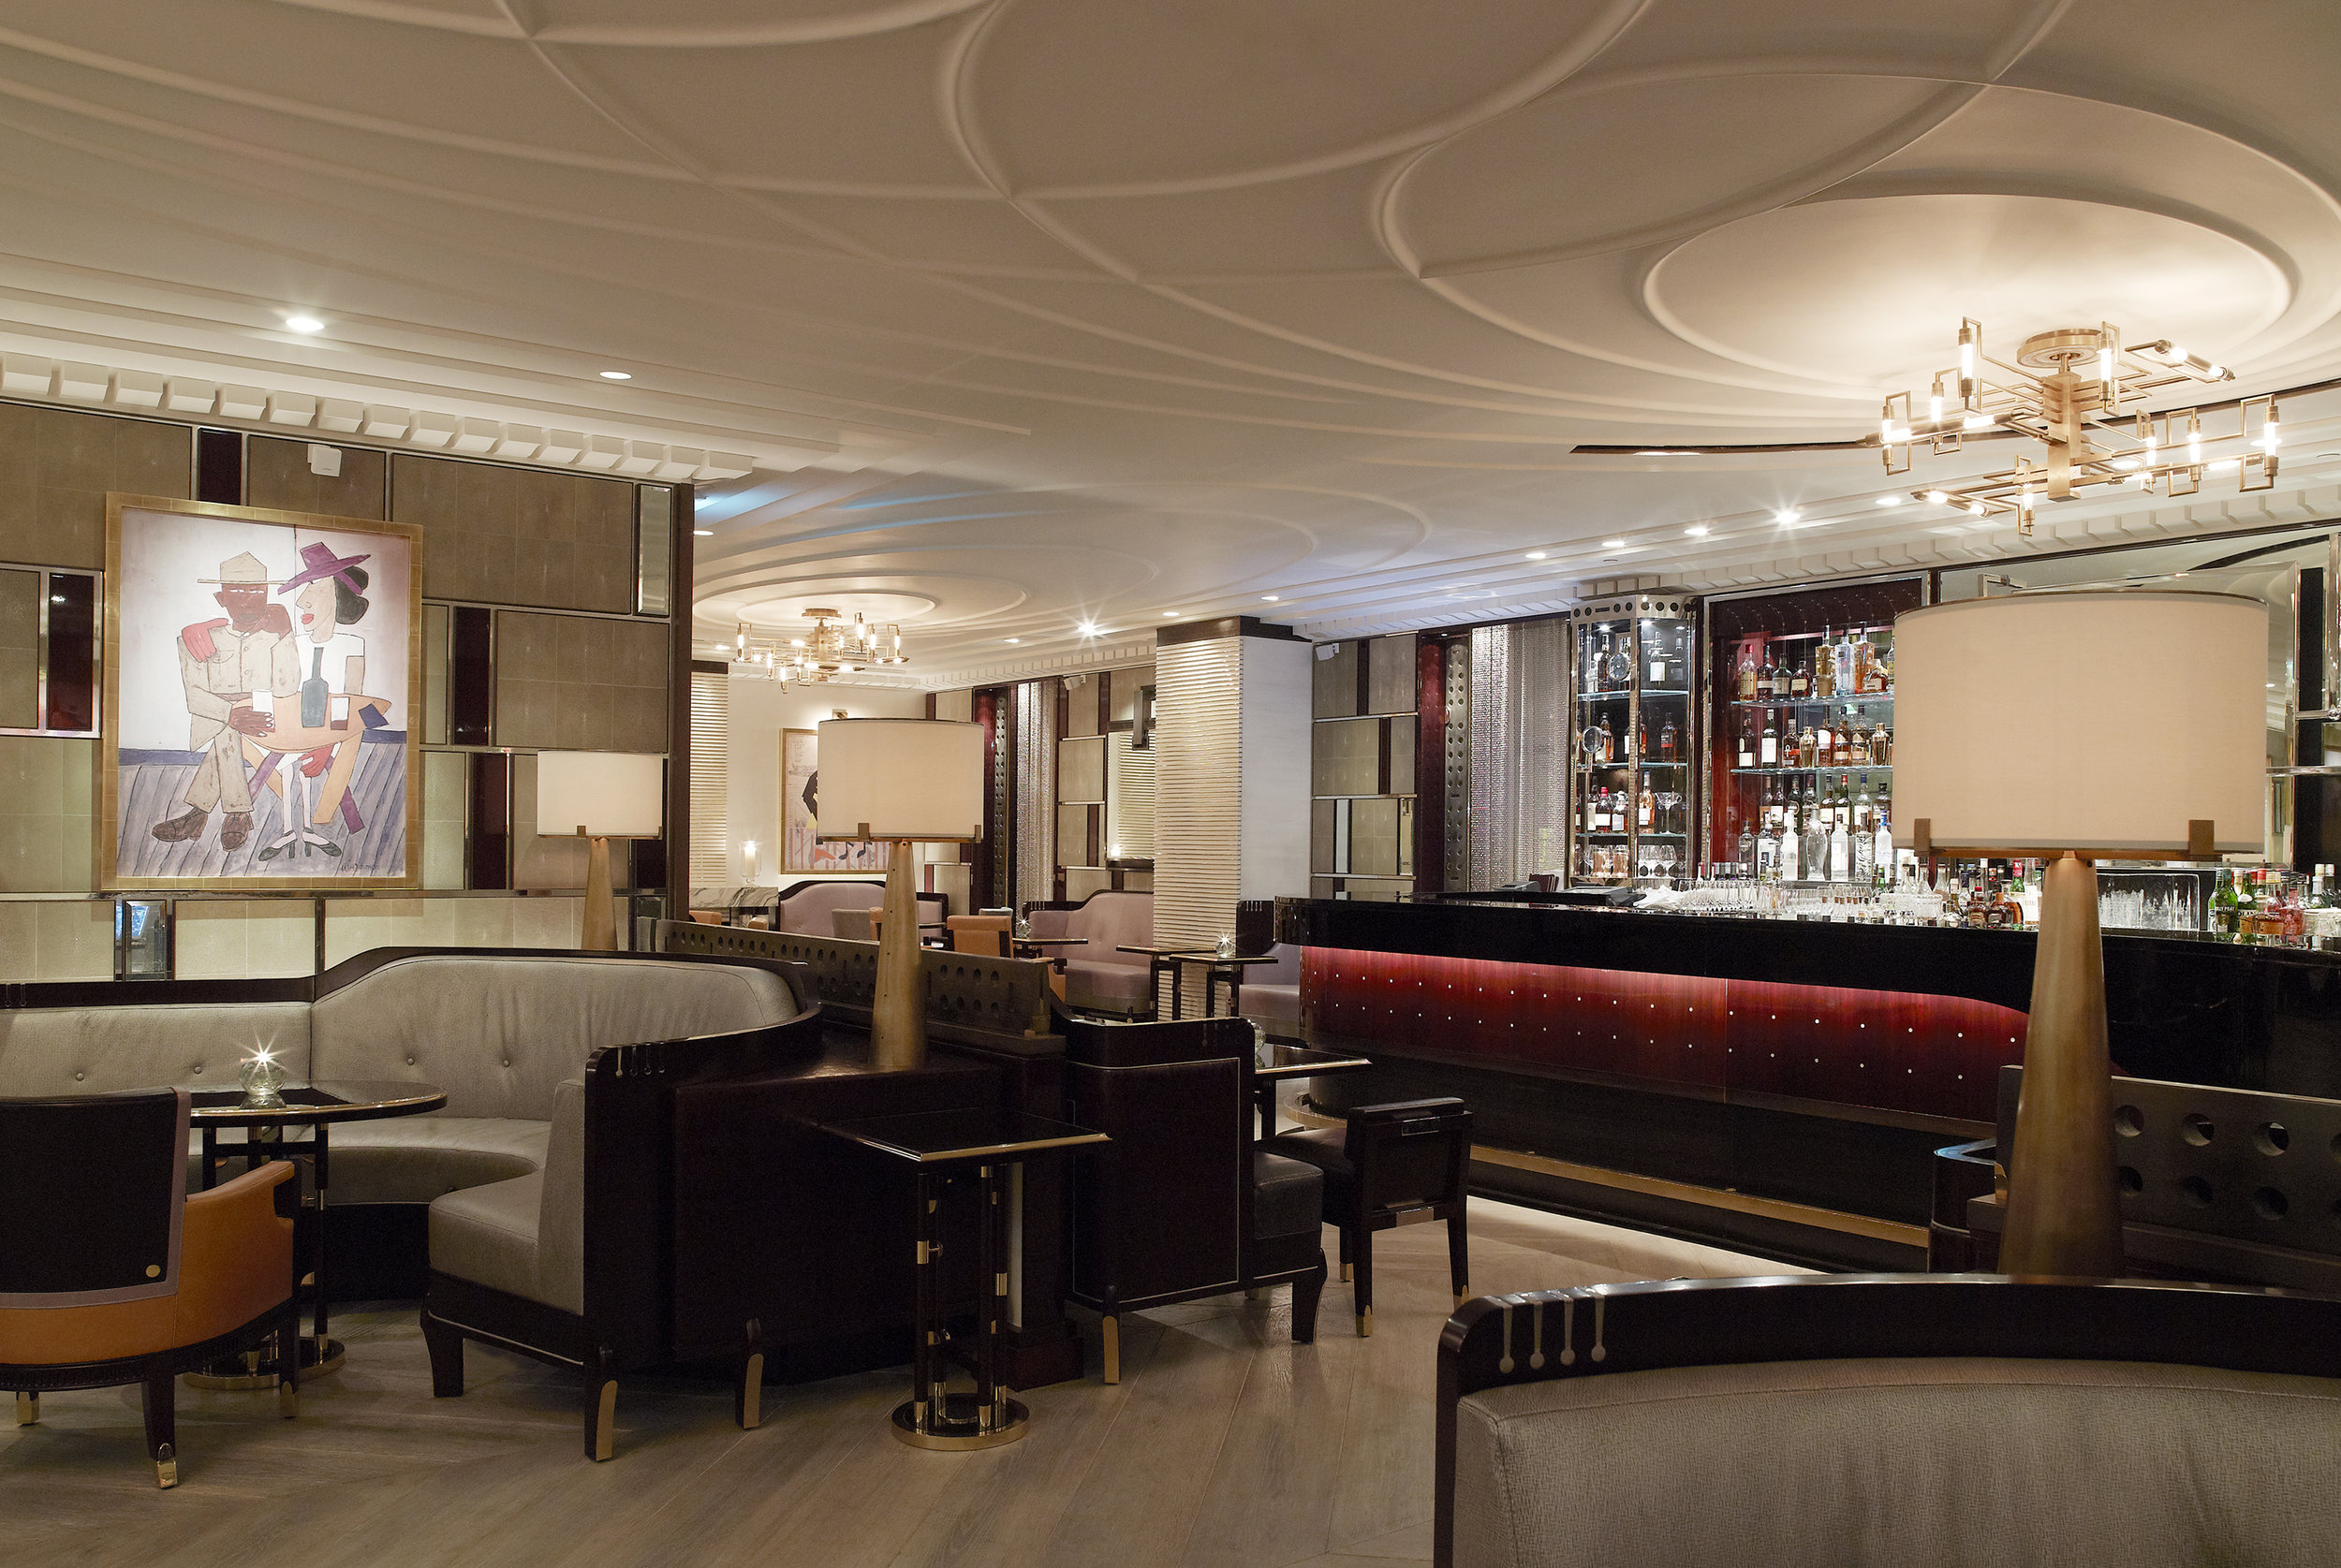 Bassoon view to bar Corinthia Hotel London.jpg